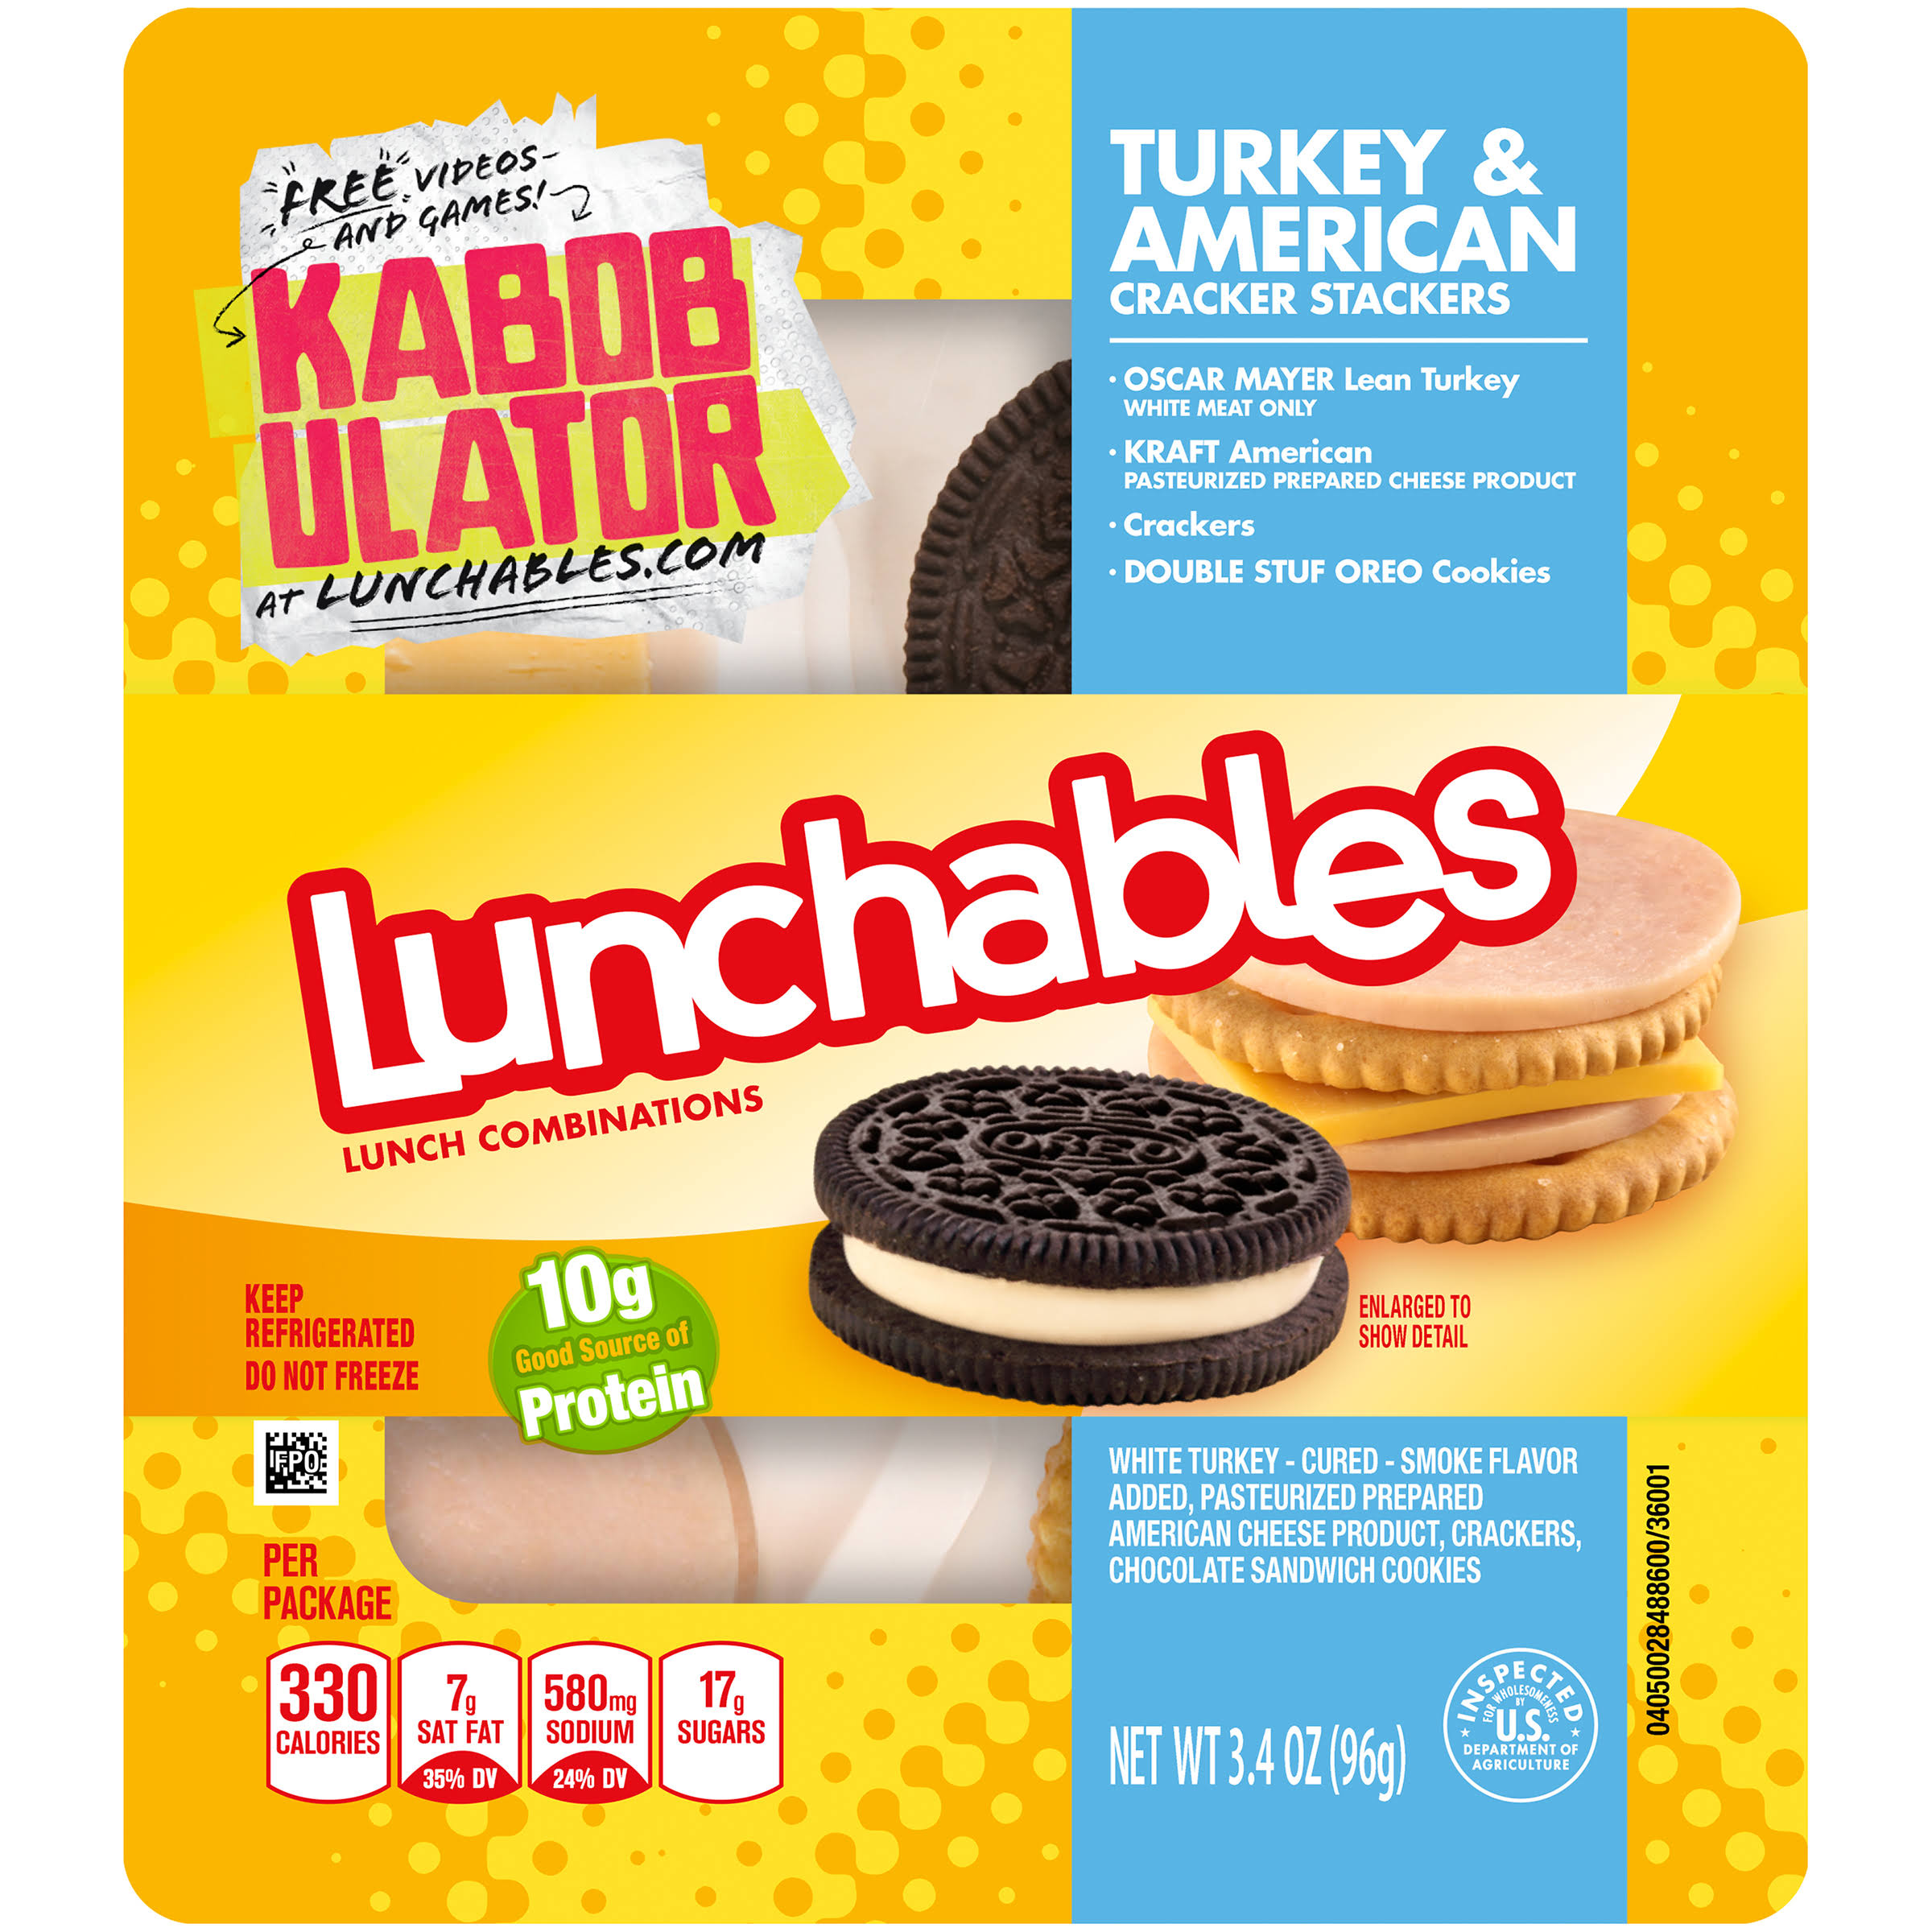 Lunchables Lunch Combinations - Turkey and American Cracker Stackers, 3.4oz